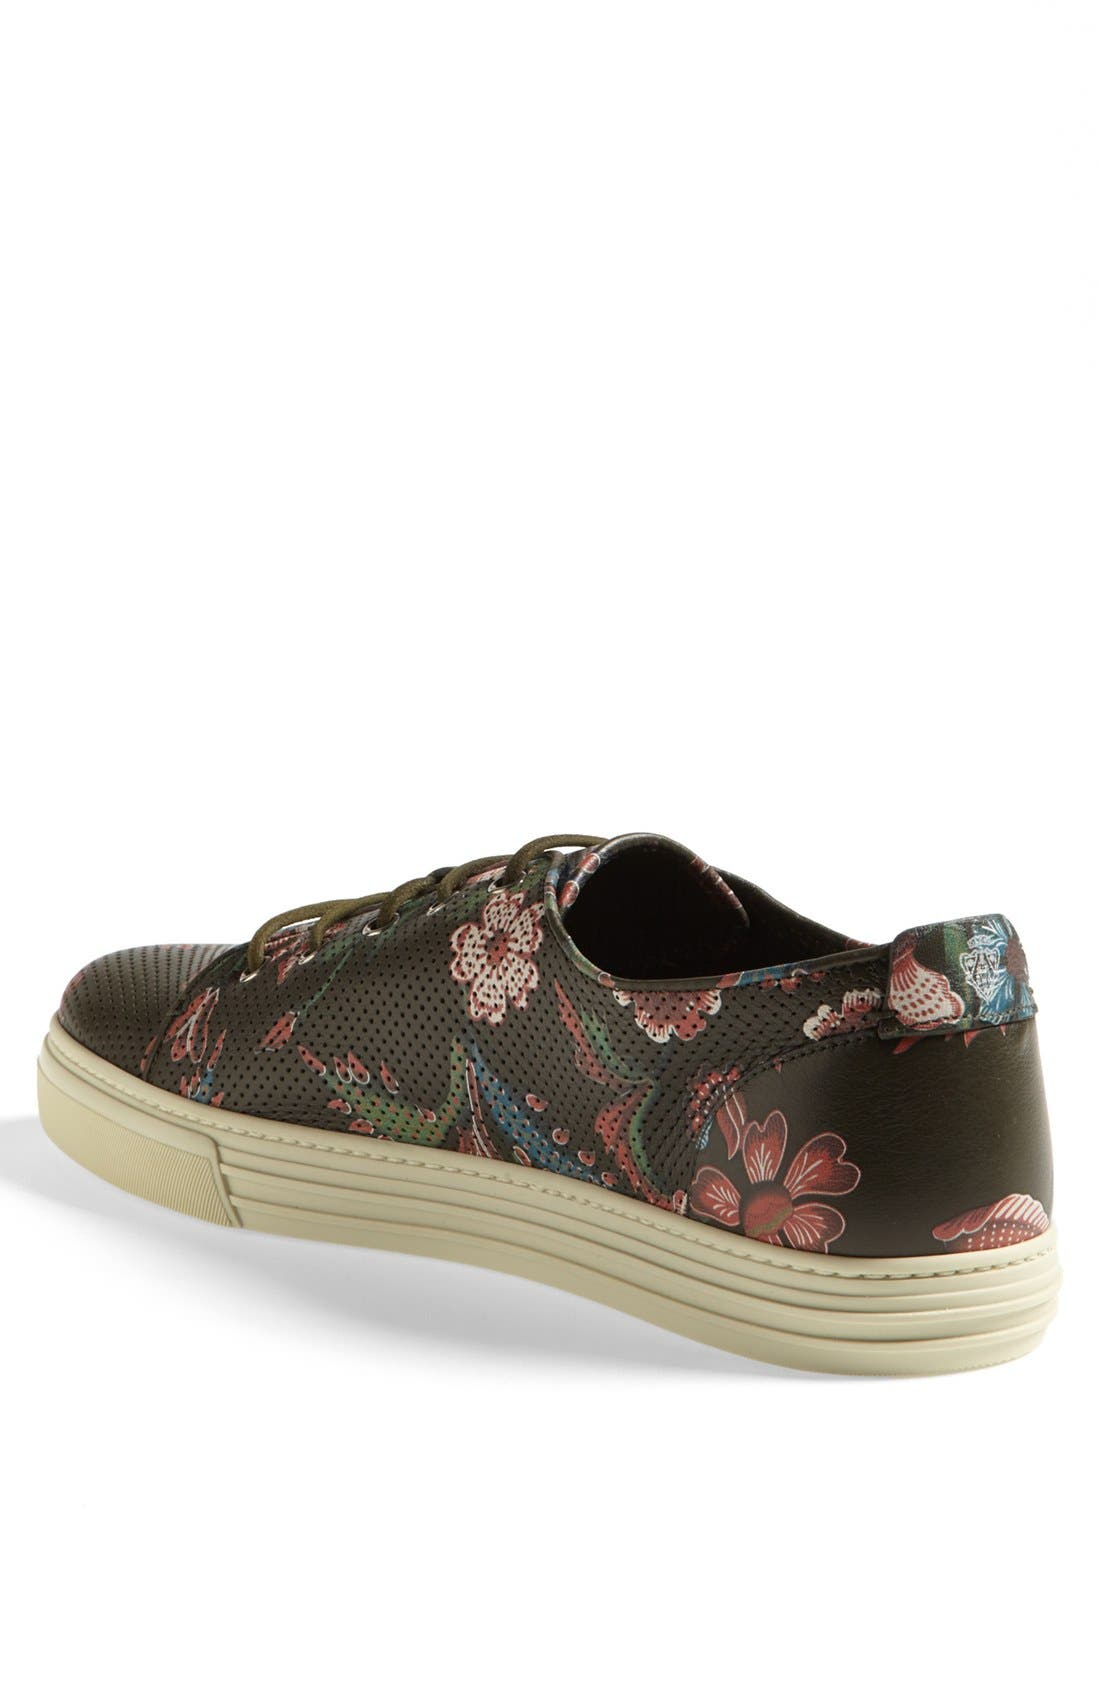 Alternate Image 2  - Gucci 'Jimy' Print Low Sneaker